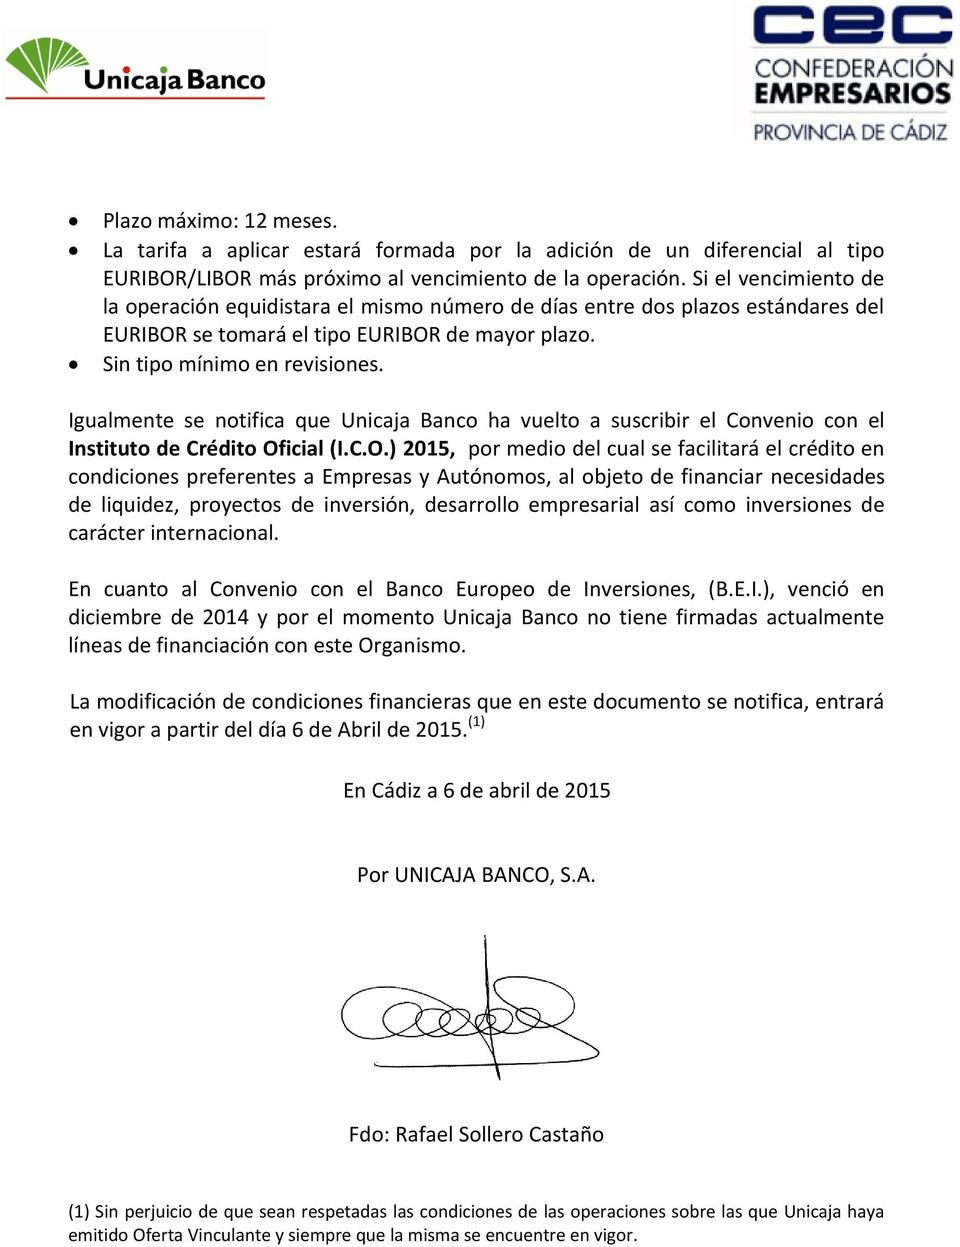 Igualmente se notifica que Unicaja Banco ha vuelto a suscribir el Convenio con el Instituto de Crédito Of